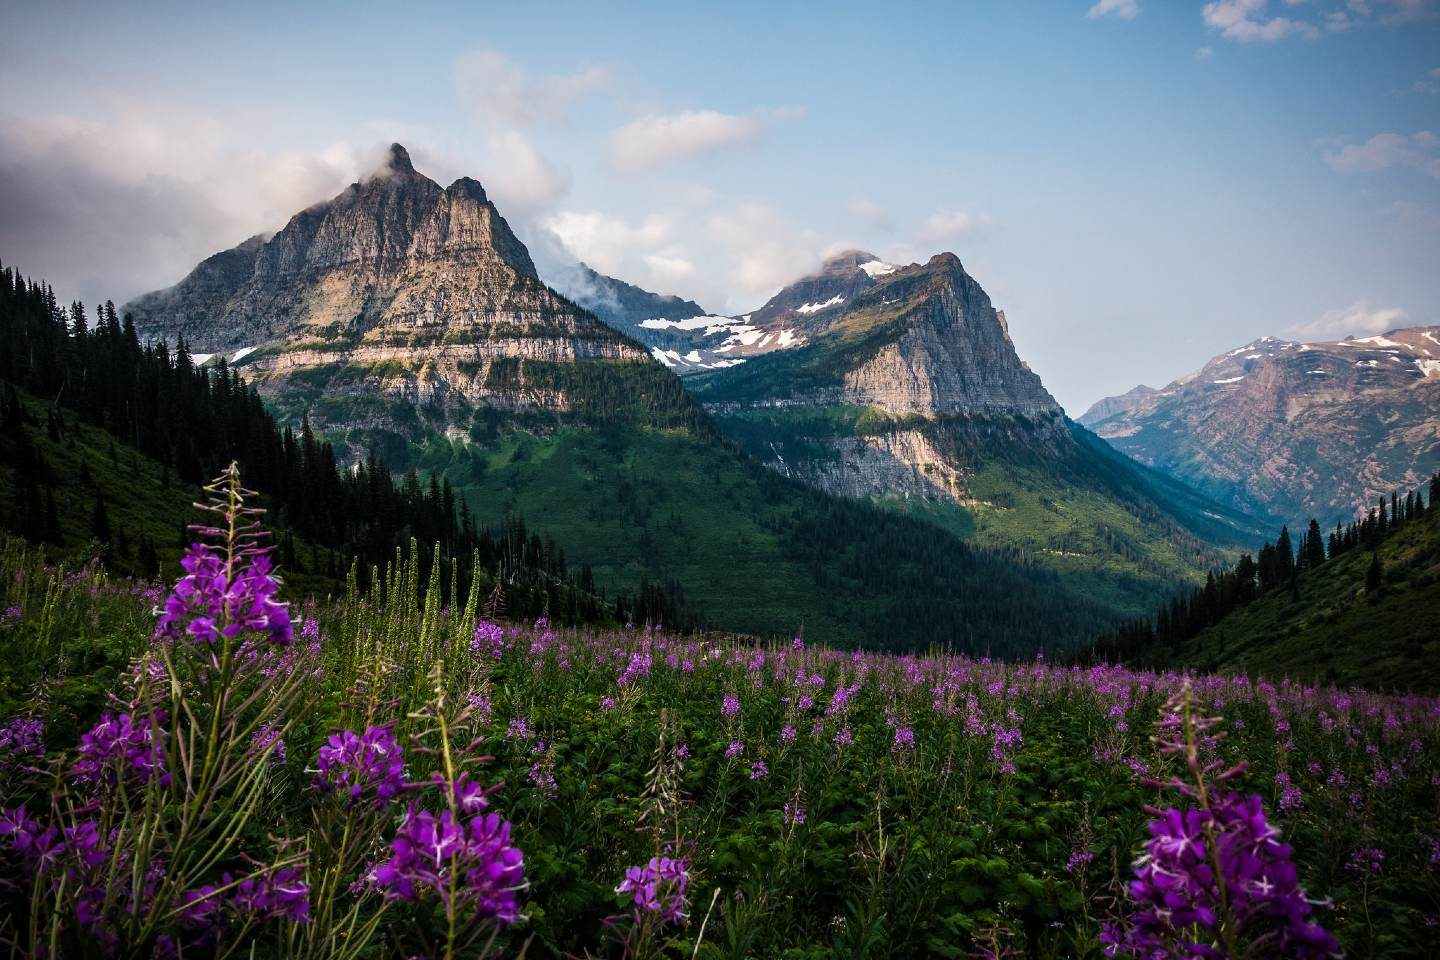 Camping in Glacier National Park: 15 Greatest Campgrounds